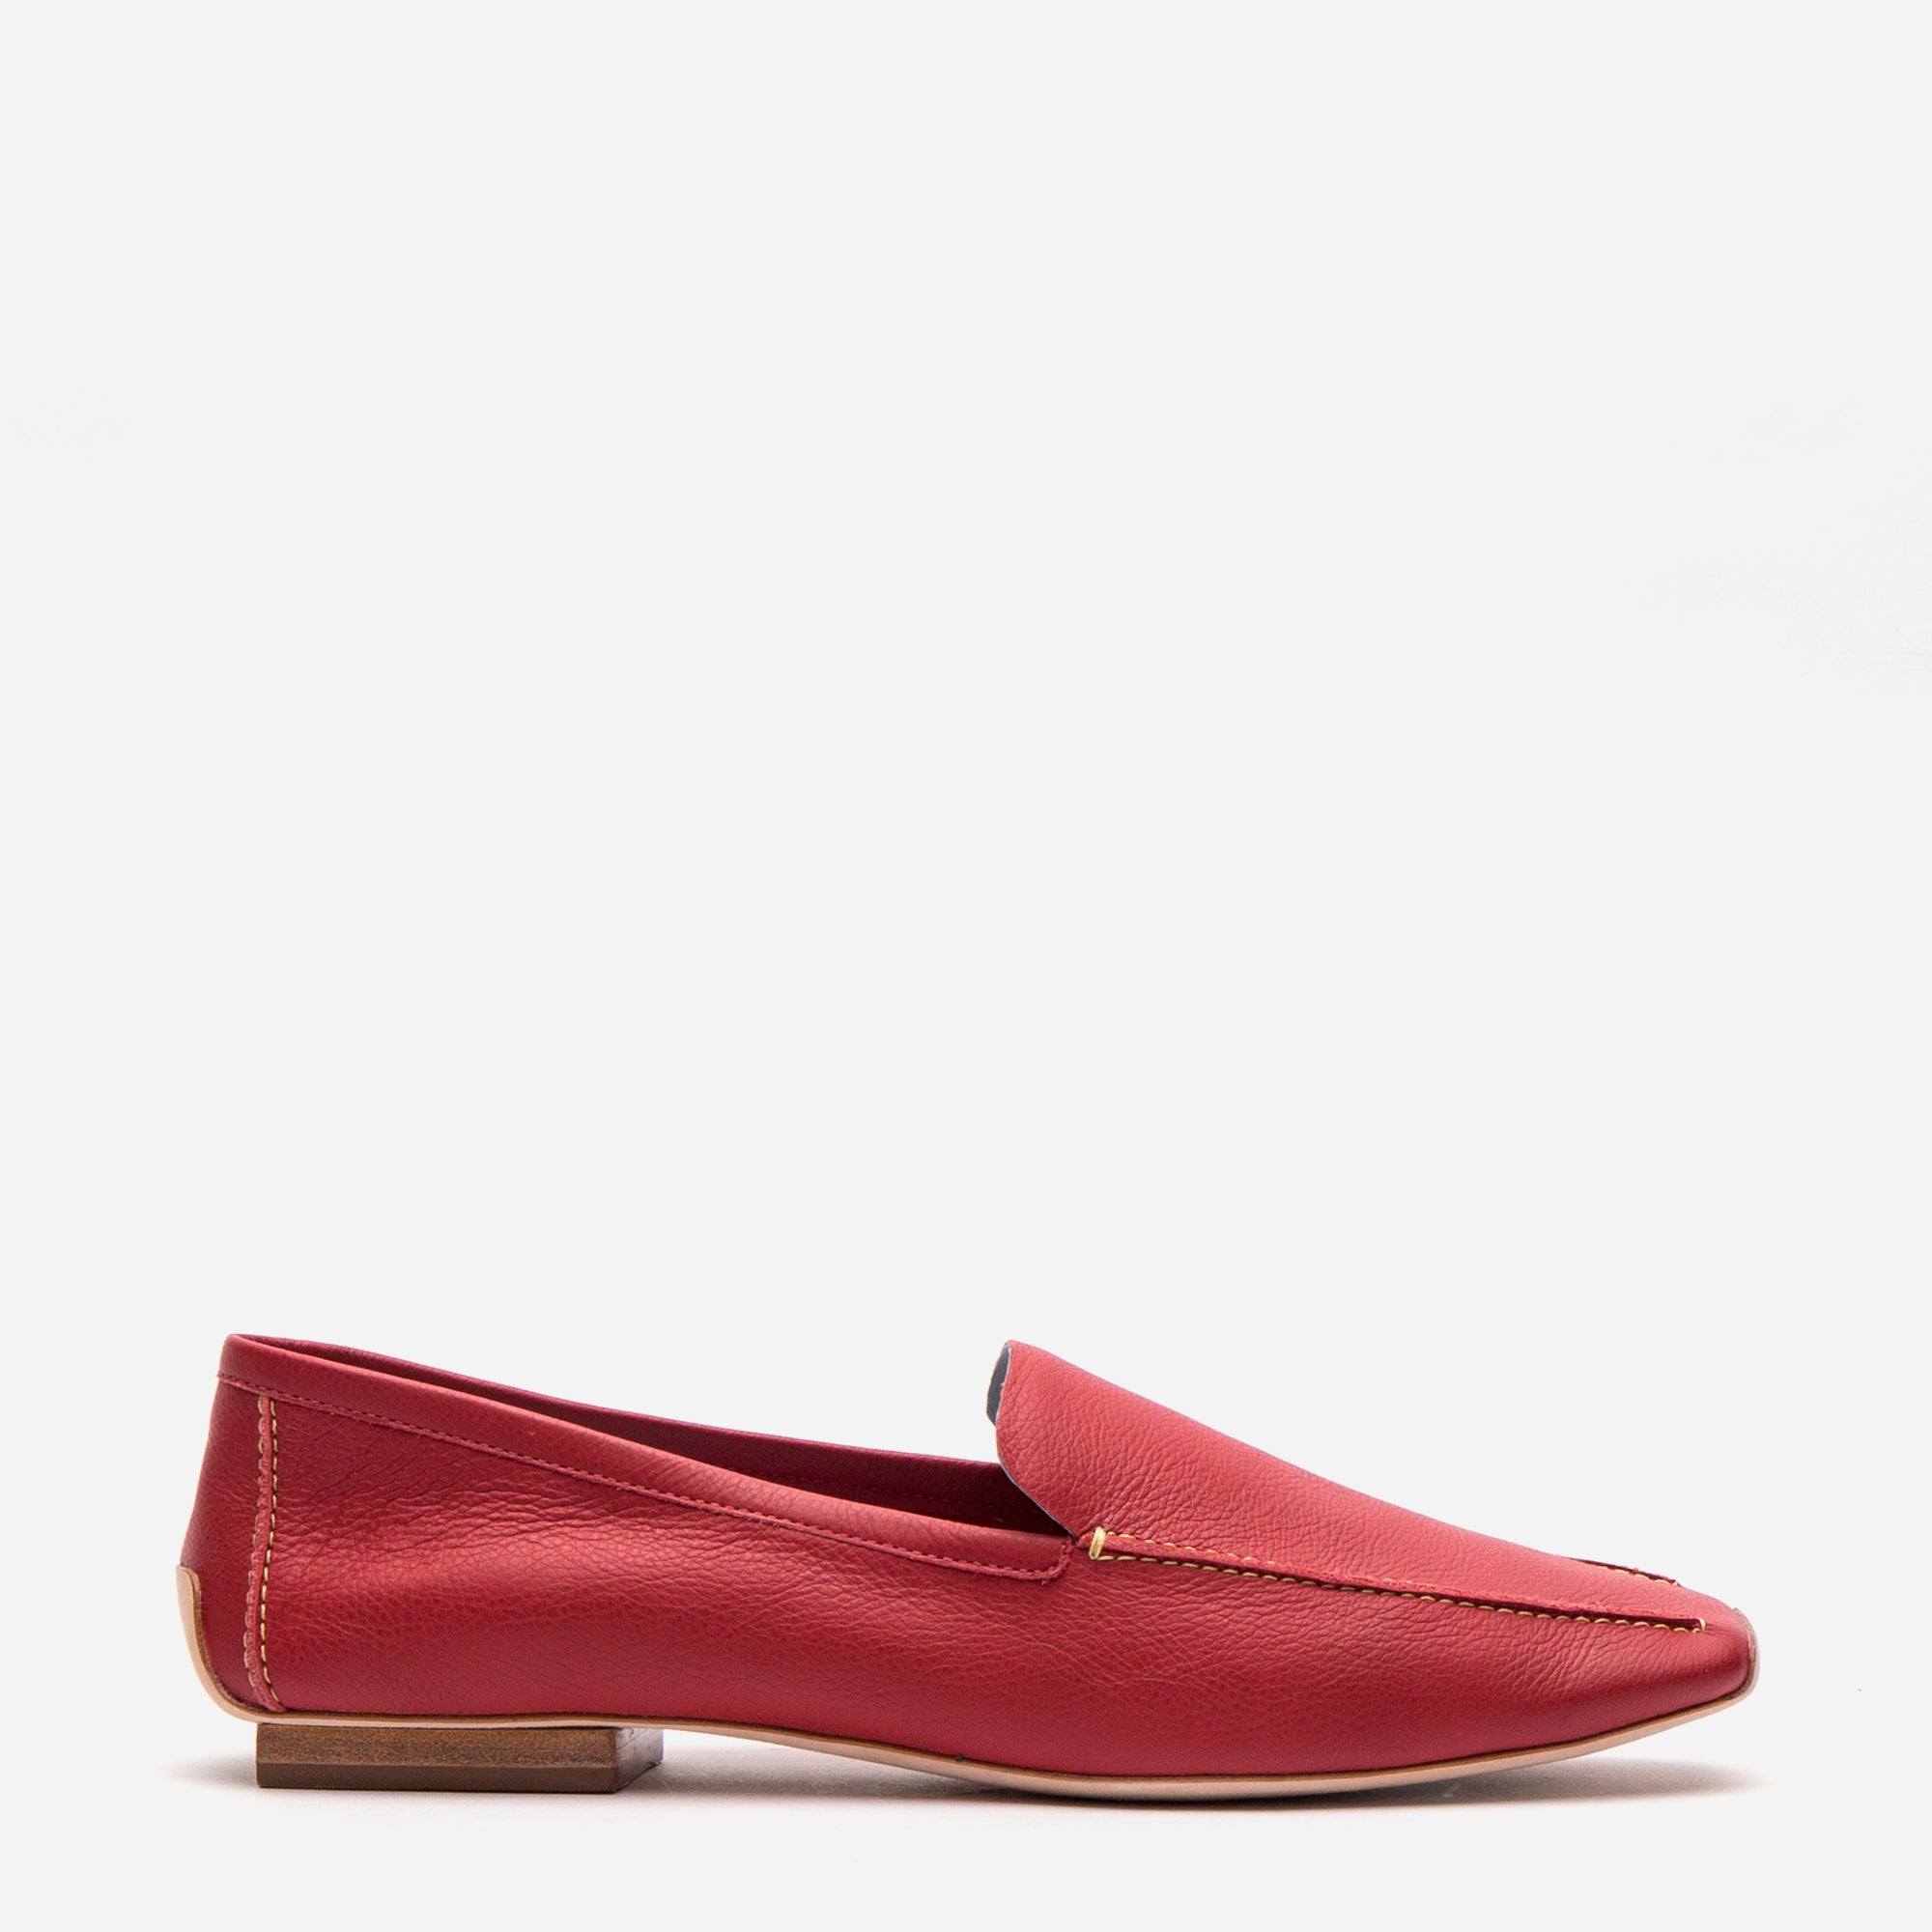 Elyce Loafer Red Leather